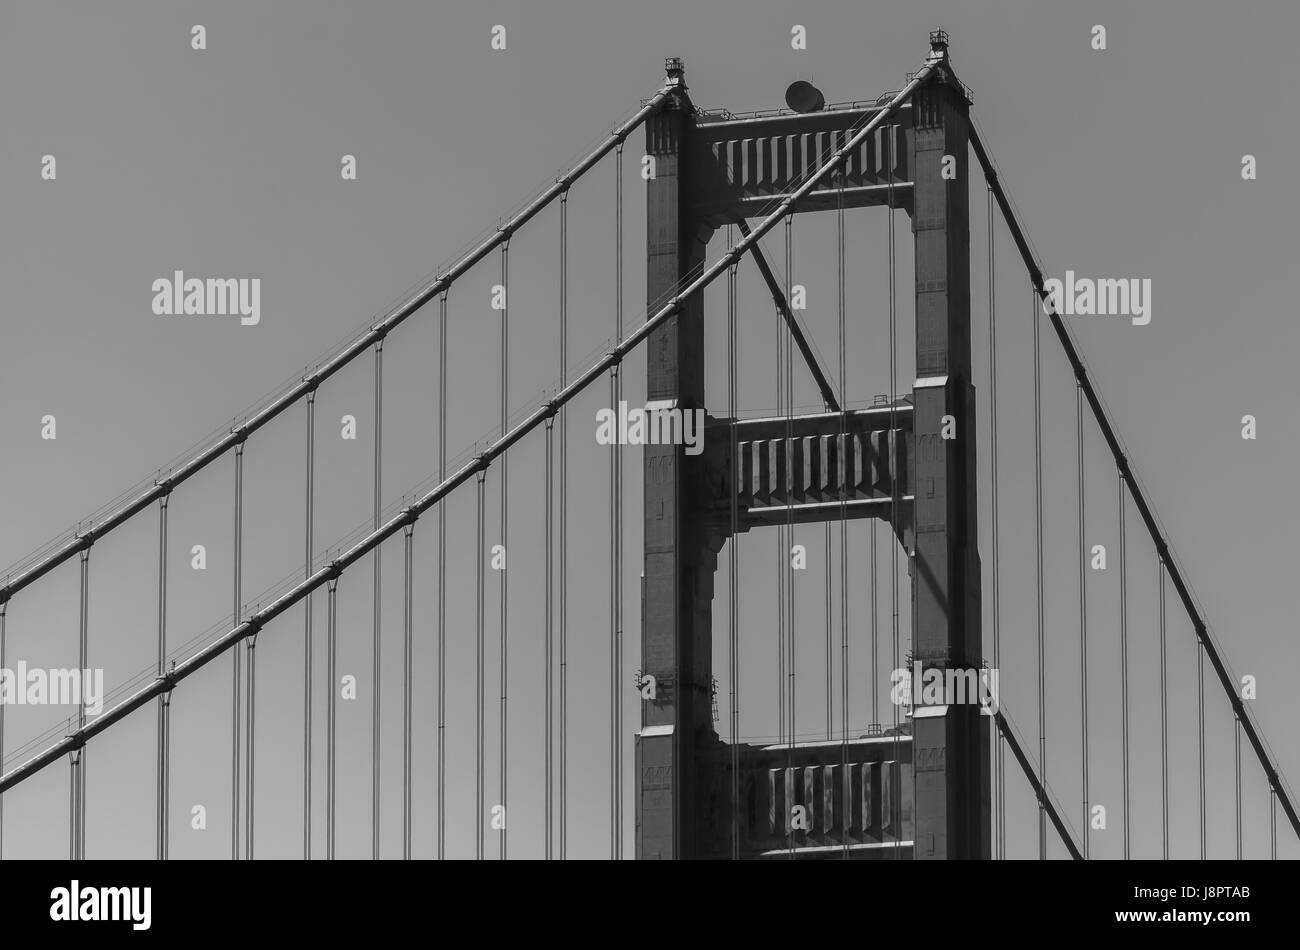 A close up shot at the structures of the iconic Golden Gate Bridge in San Francisco, USA - Stock Image